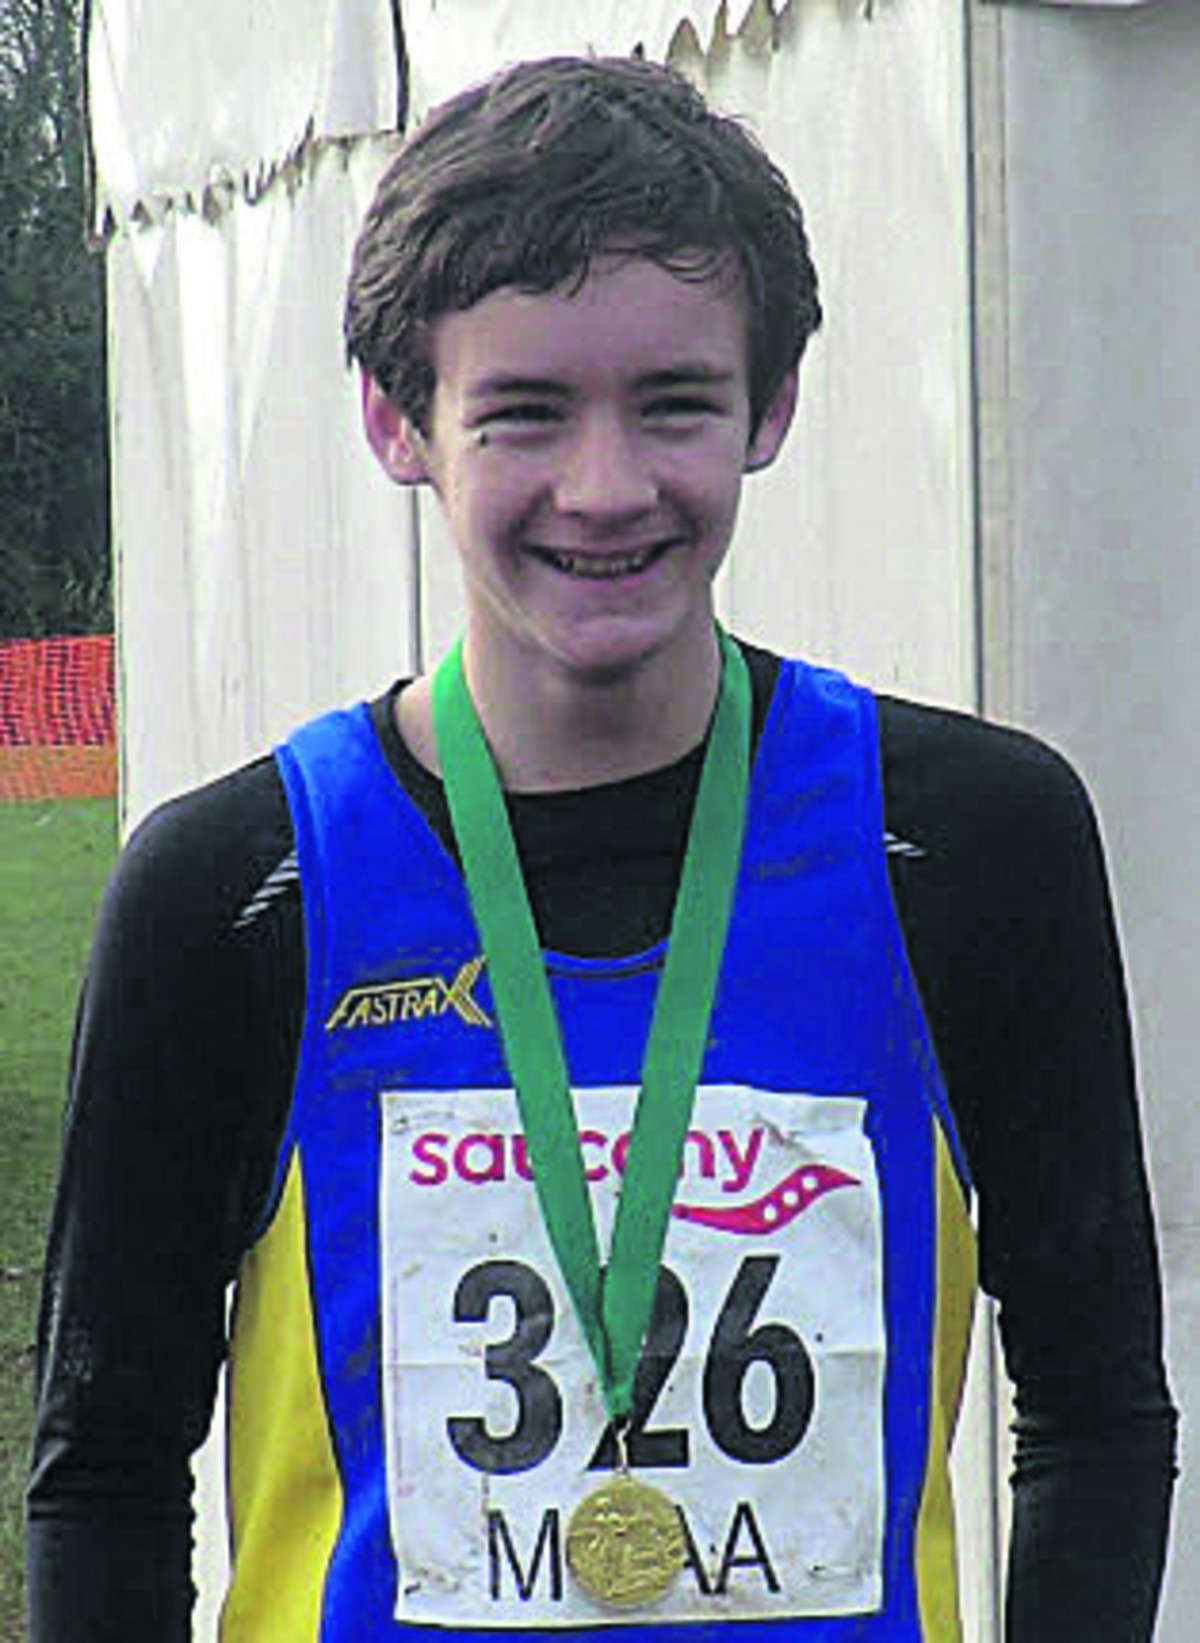 U13 winner Hayden Bailey